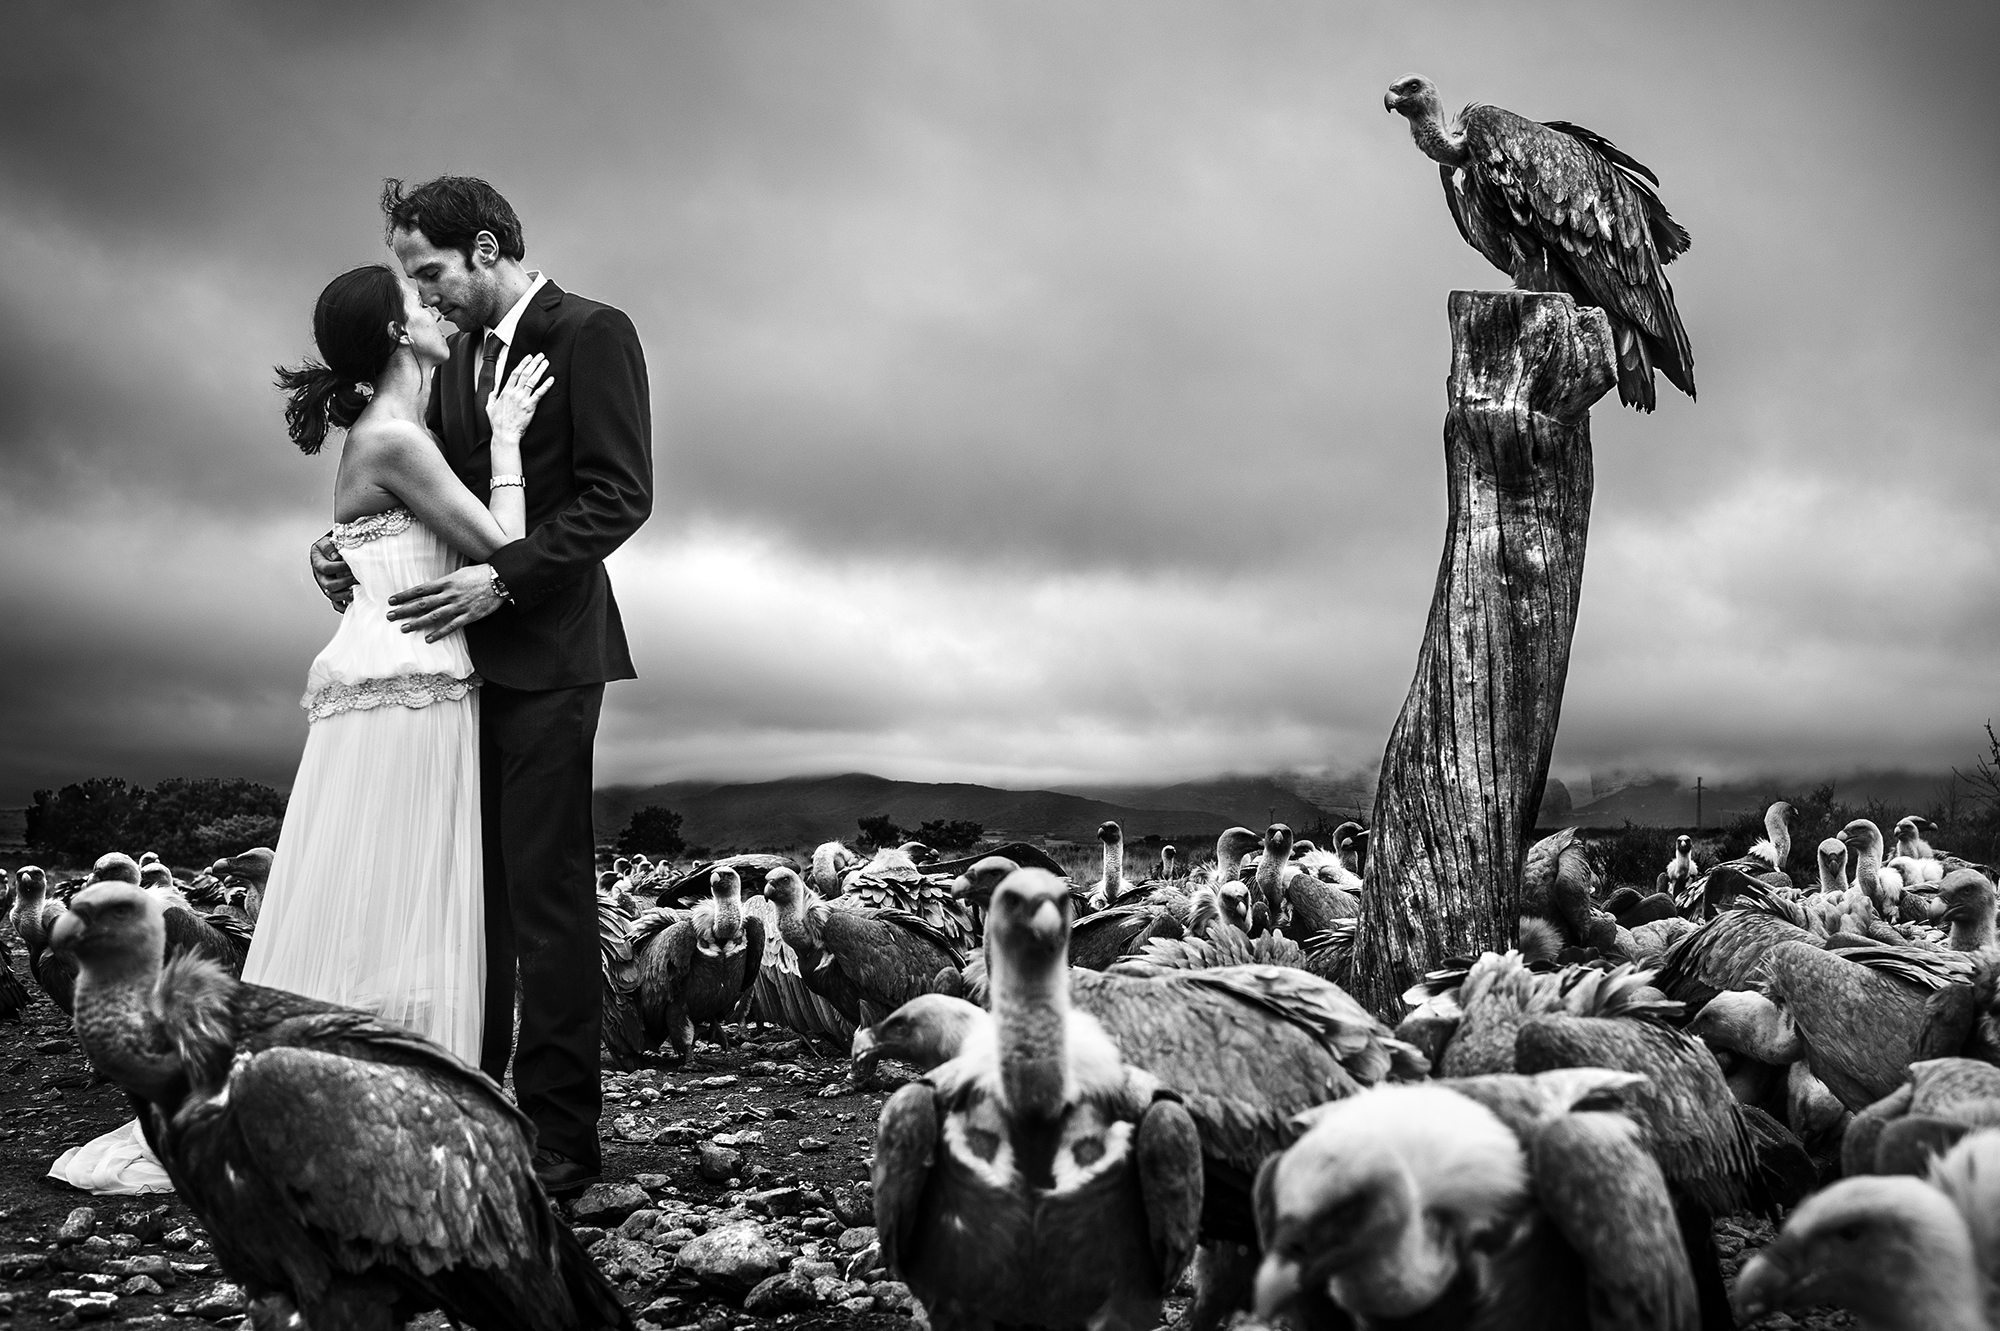 unique-black-and-white-of-bride-and-groom-amidst-flock-of-vultures-worlds-best-wedding-photos-victor-lax-spain-wedding-photographers